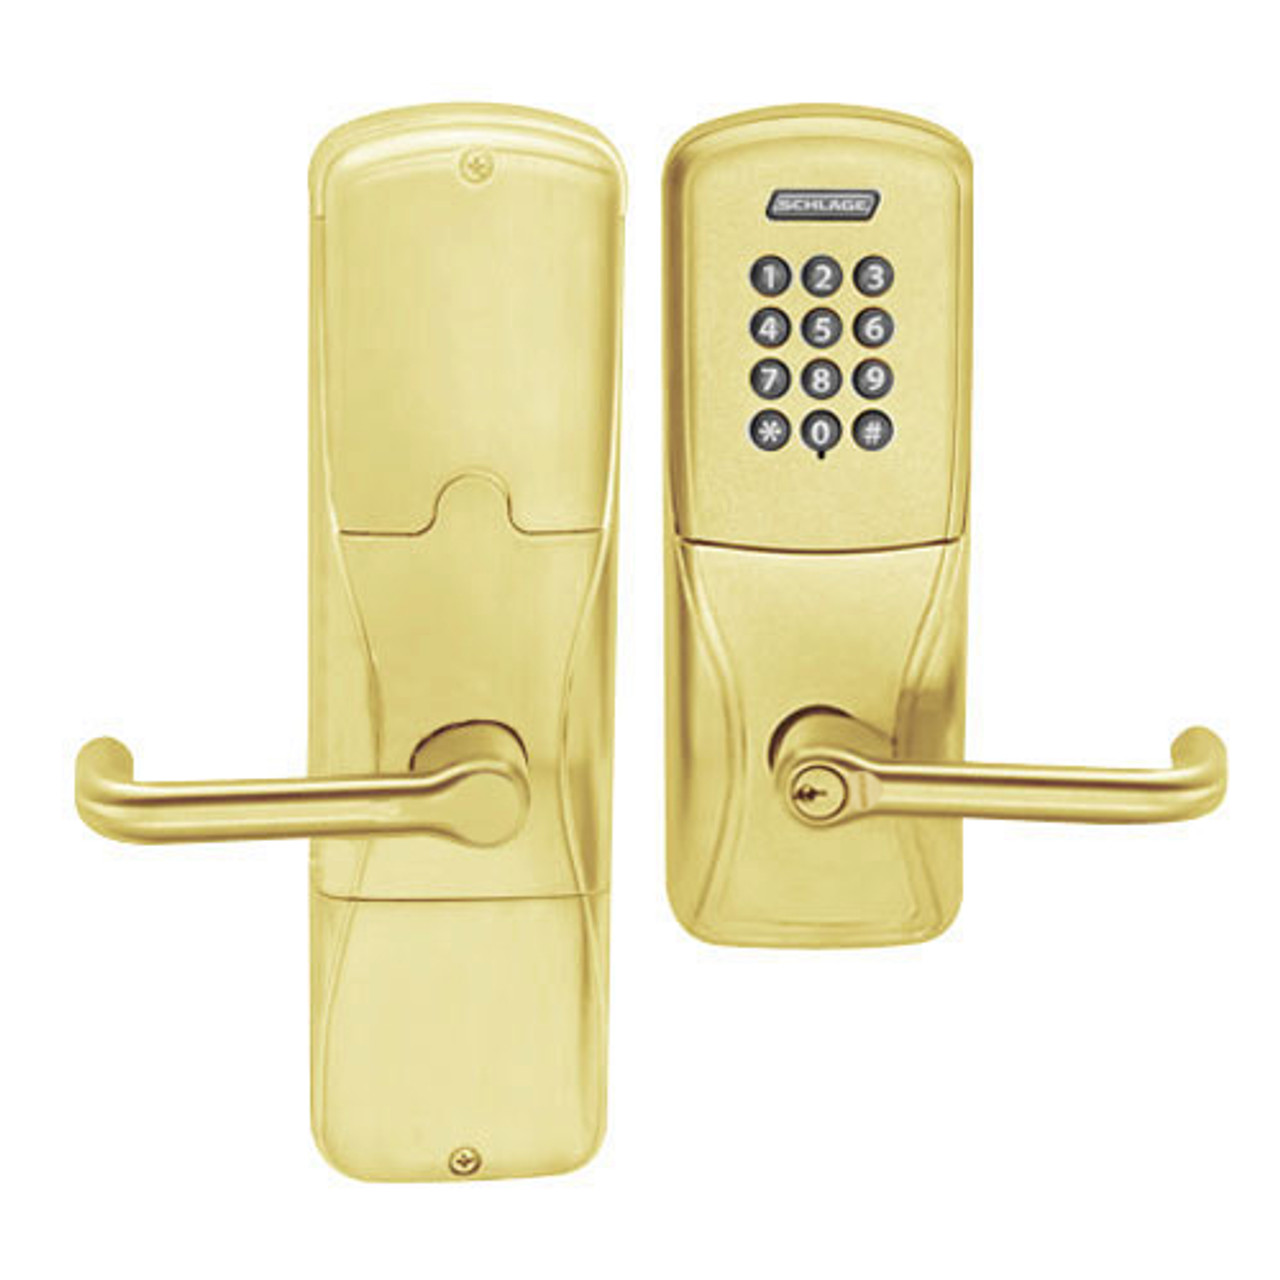 AD200-CY-40-KP-TLR-GD-29R-605 Schlage Privacy Cylindrical Keypad Lock with Tubular Lever in Bright Brass